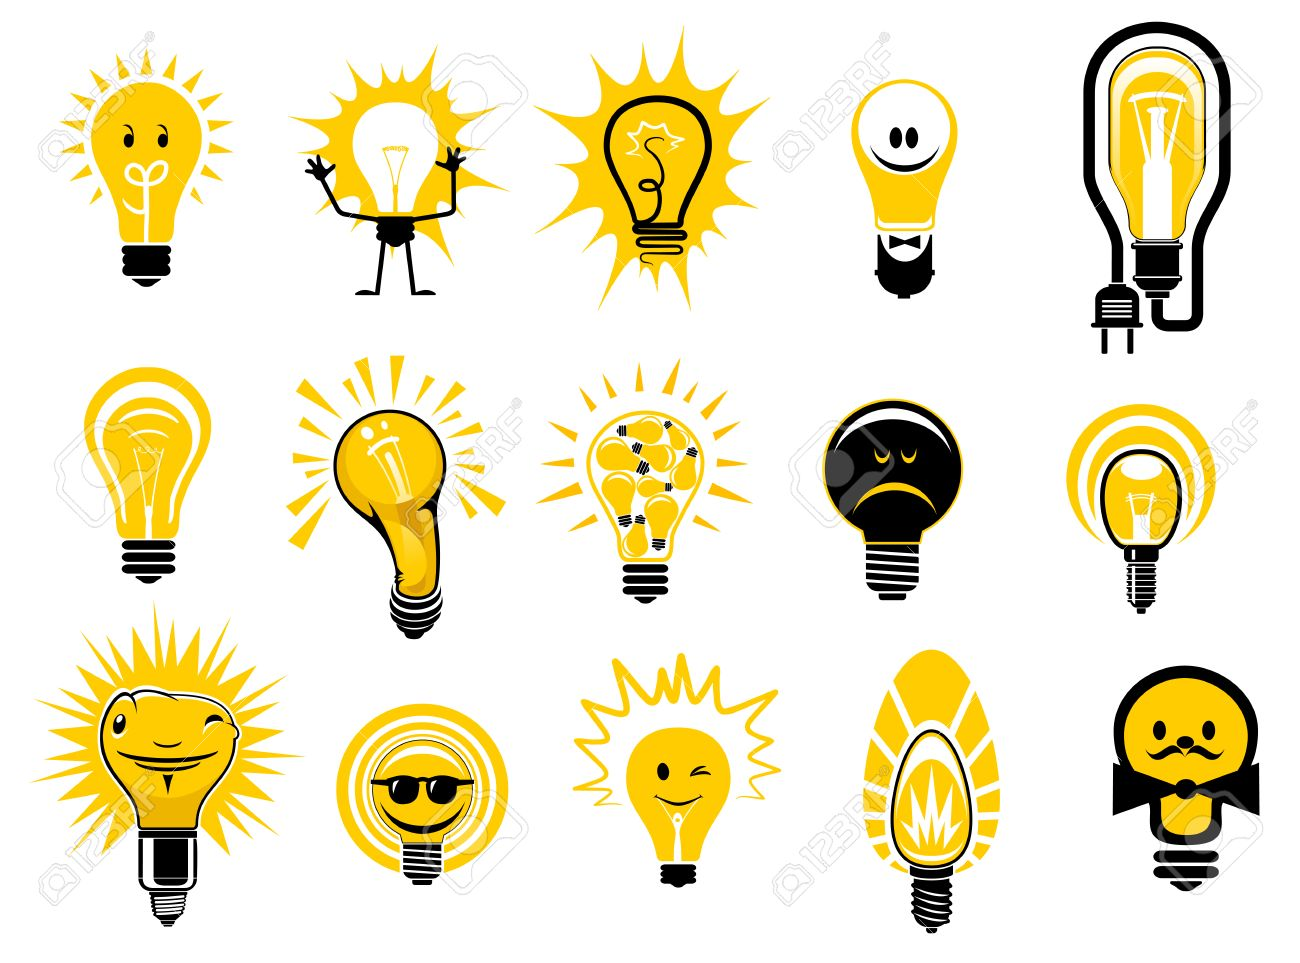 Glowing Light Bulbs Icons In Cartoon Style Showing Electric Filament